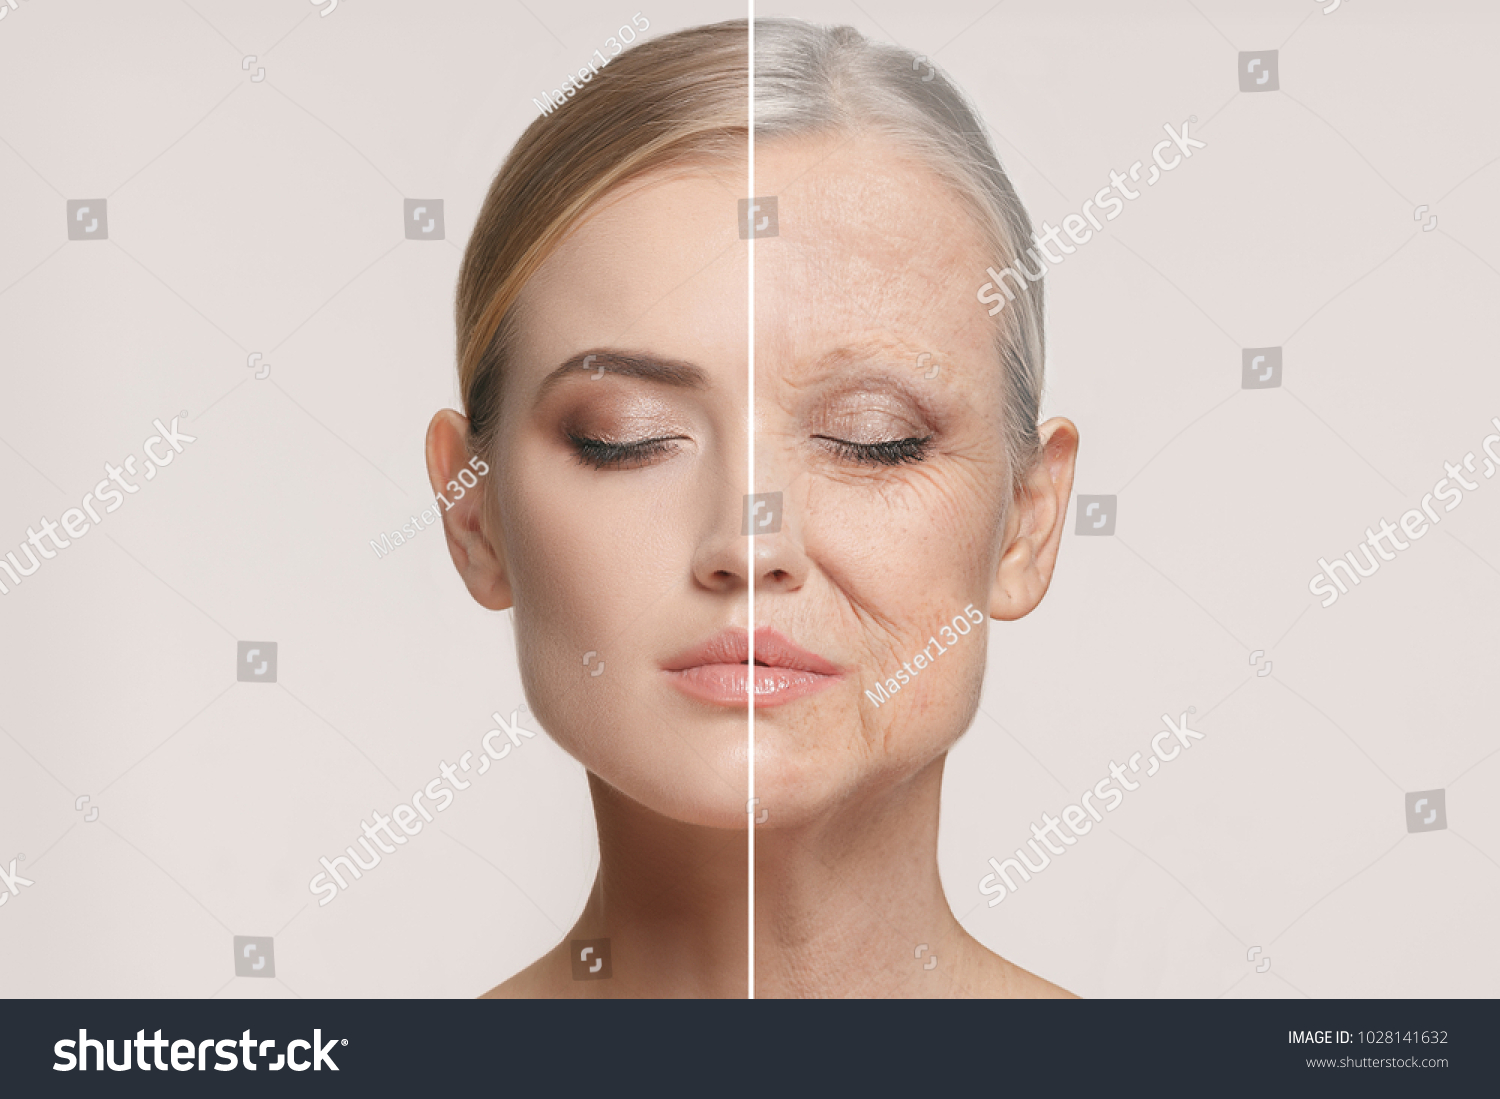 Comparison. Portrait of beautiful woman with problem and clean skin, aging and youth concept, beauty treatment and lifting. Before and after concept. Youth, old age. Process of aging and rejuvenation #1028141632